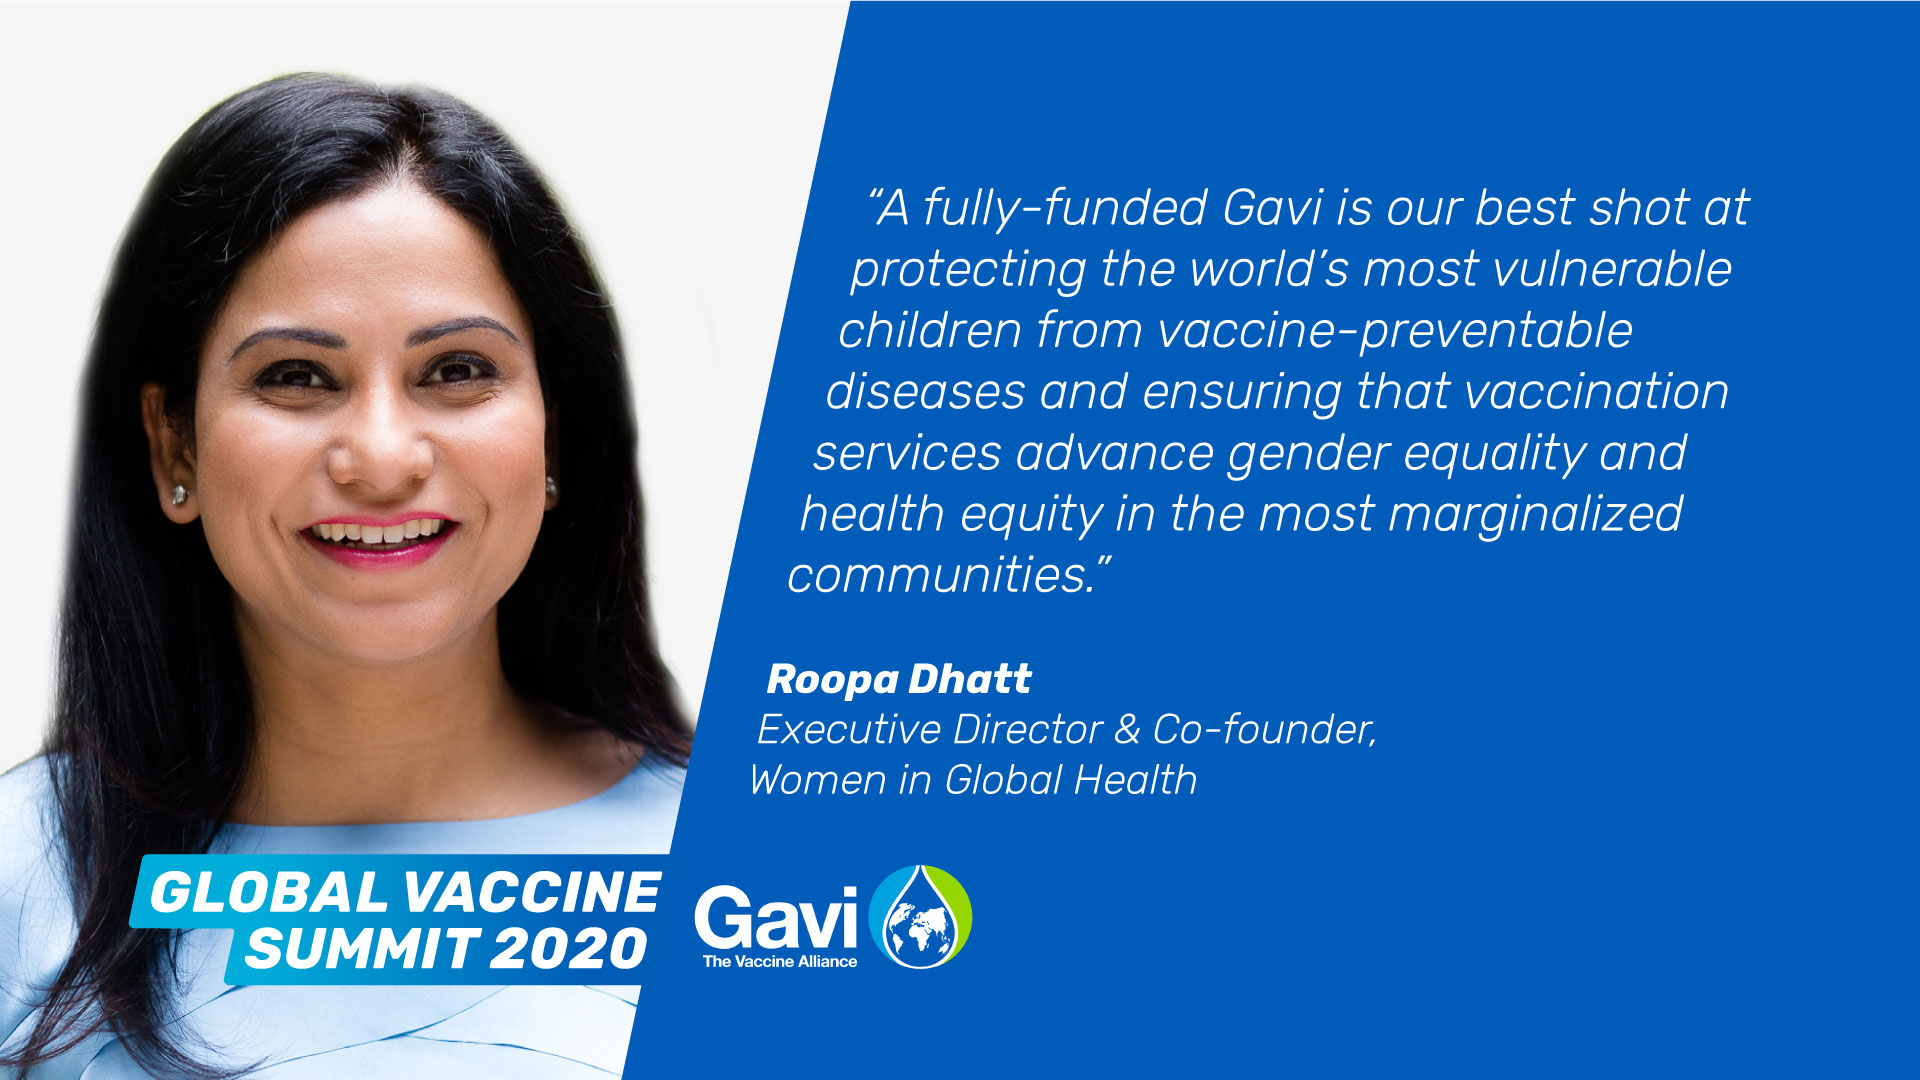 Roopa Dhatt, Executive Director & Co-founder, Women in Global Health